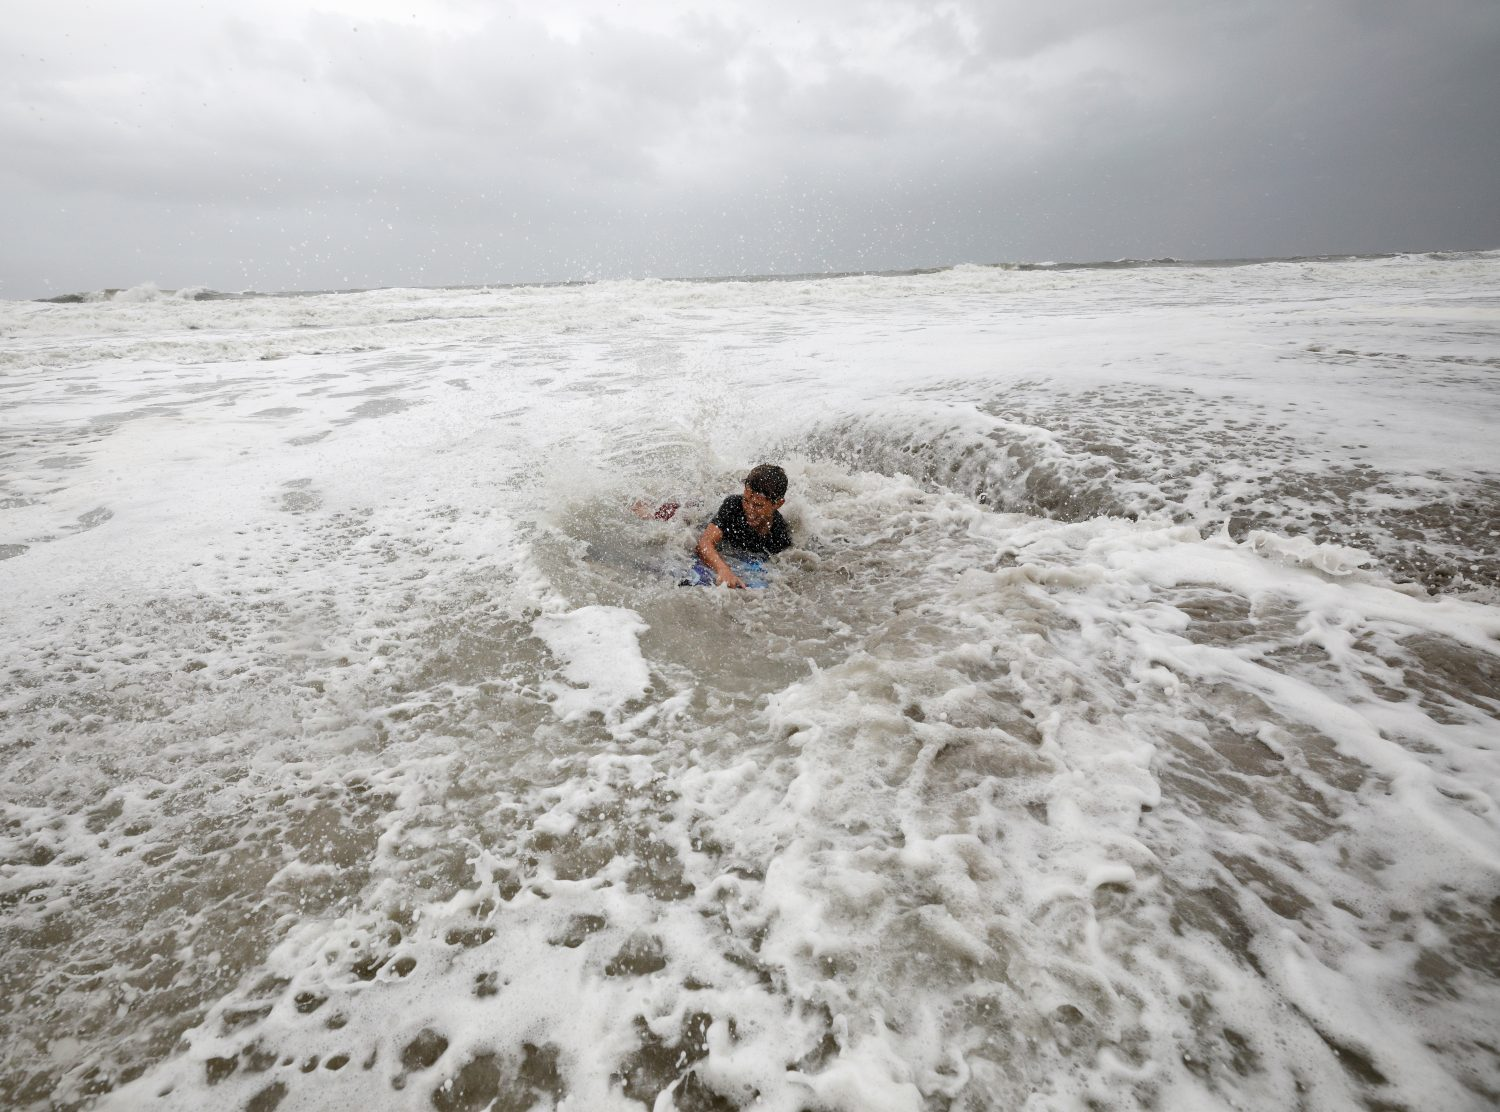 Nathan Piper, 11, is swamped by increasingly rough waves while body surfing as Hurricane Dorian approaches, in Carolina Beach, North Carolina, U.S., September 5, 2019. REUTERS/Jonathan Drake